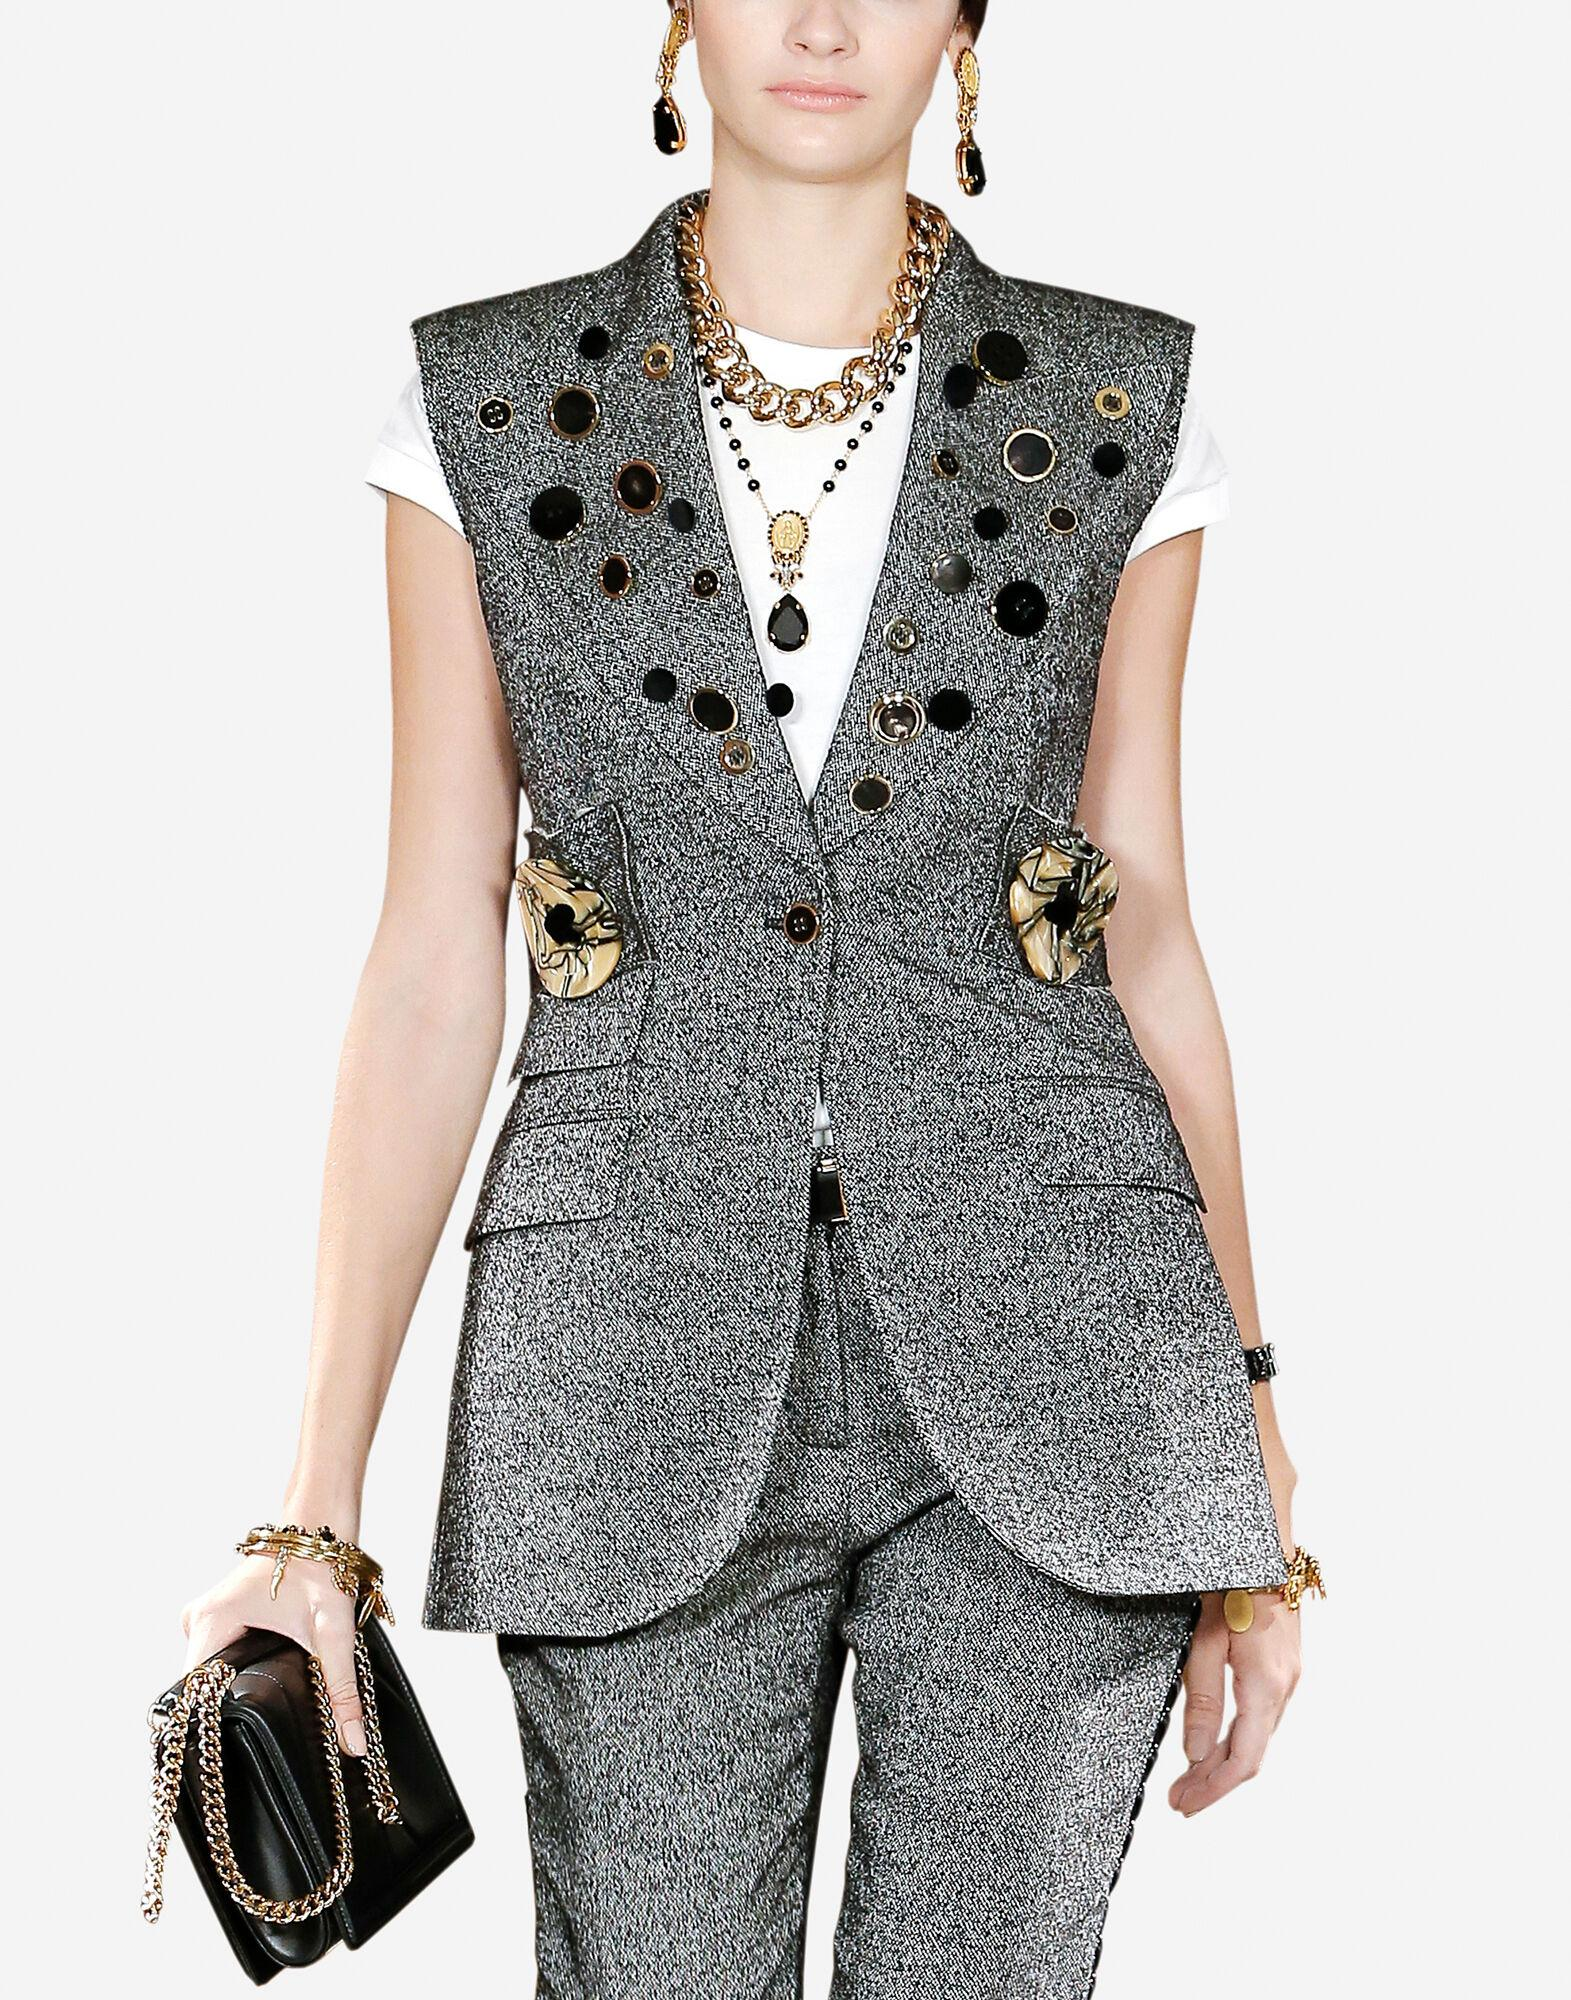 Micro-patterned wool vest with decorative buttons